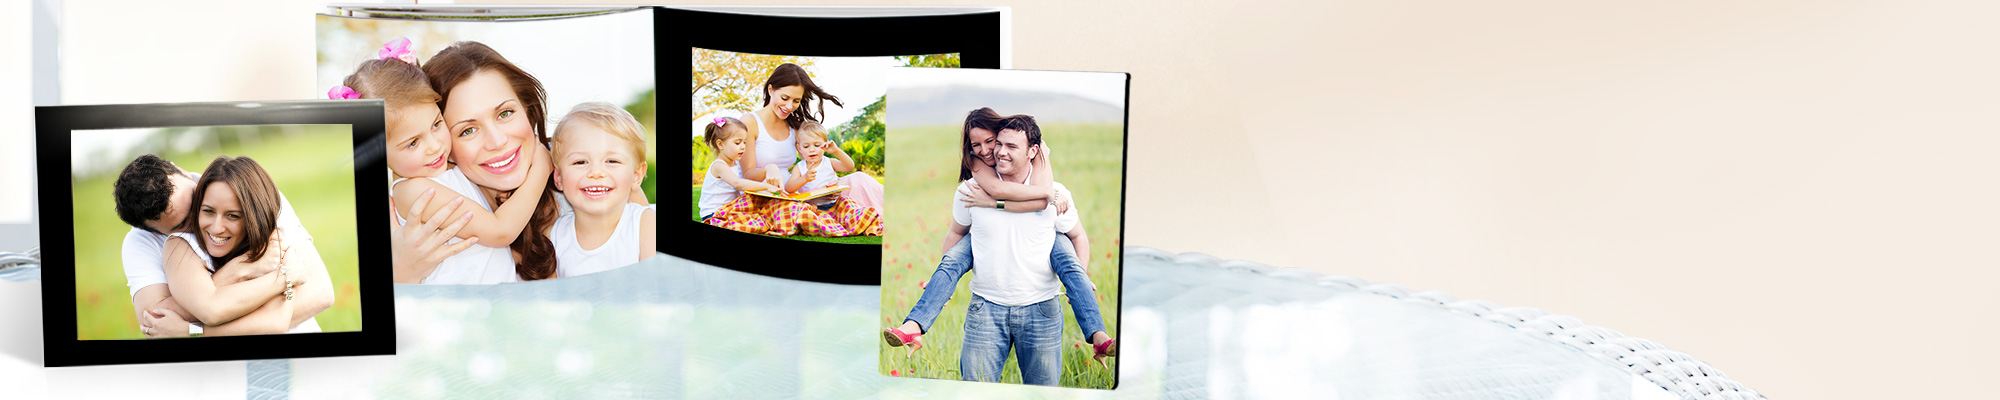 Gifts under £20 Just add your creativity to make these gifts priceless.